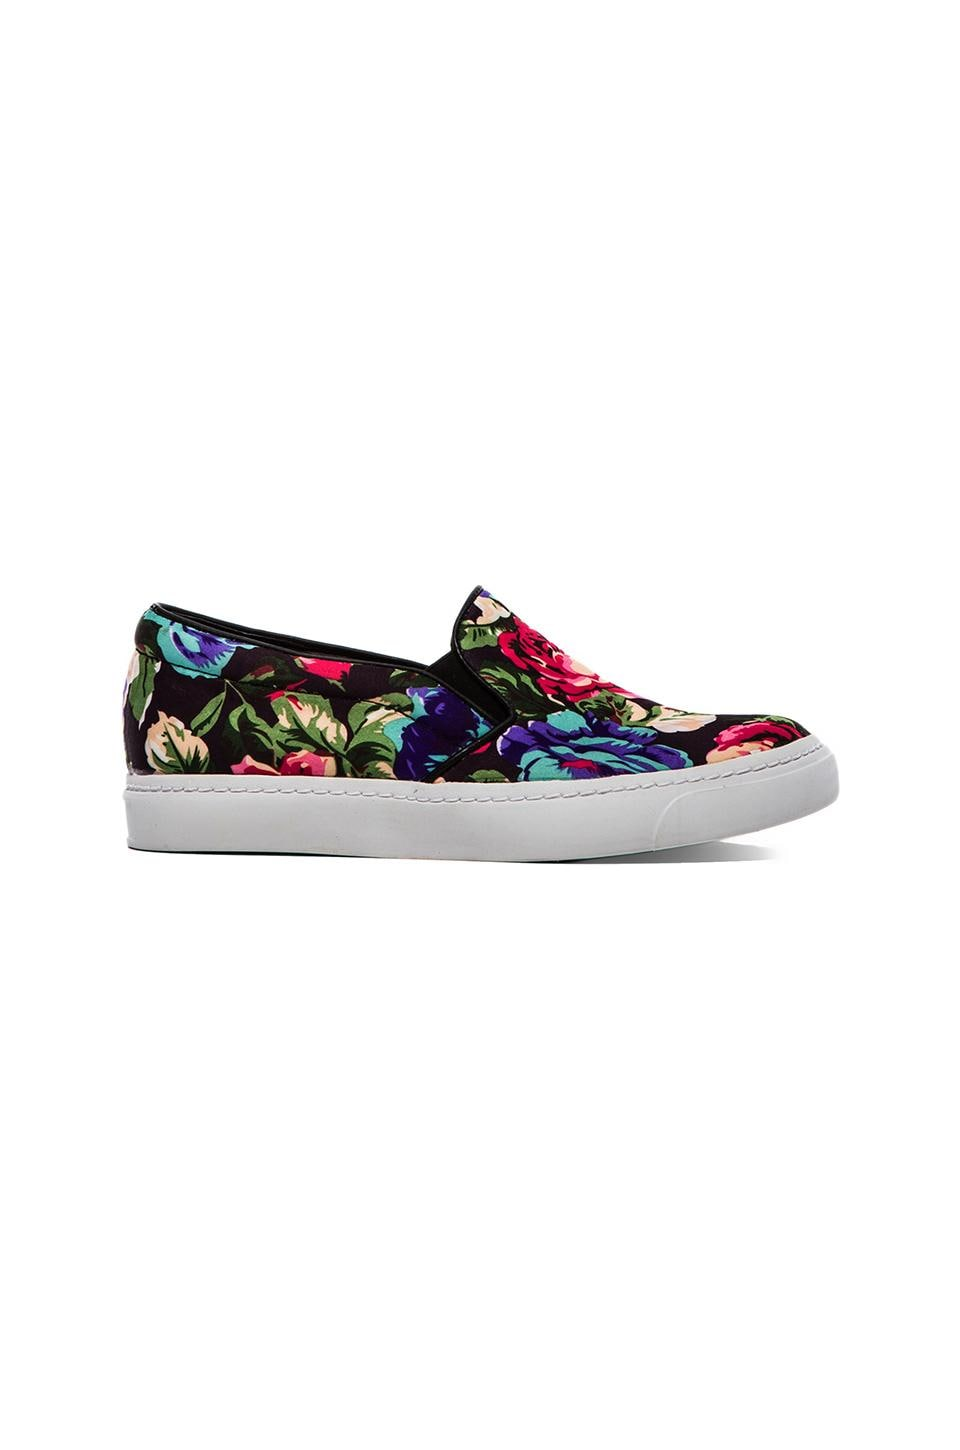 Jeffrey Campbell Alva Sneaker in Blue & Black Floral